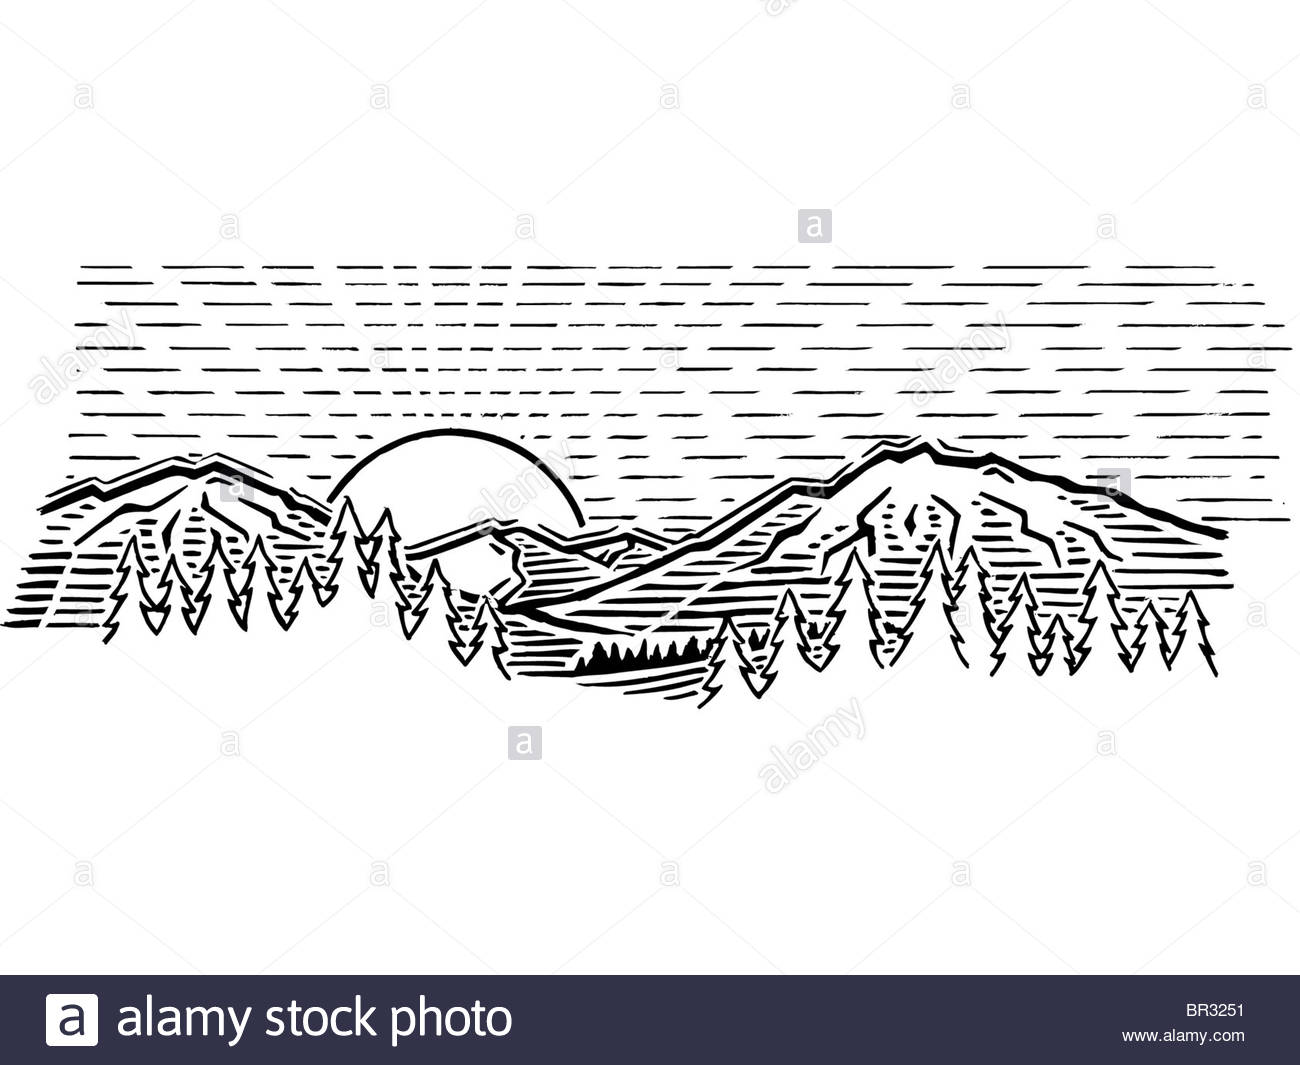 1300x1065 A Black And White Drawing Of The Sun Amidst The Mountains Stock